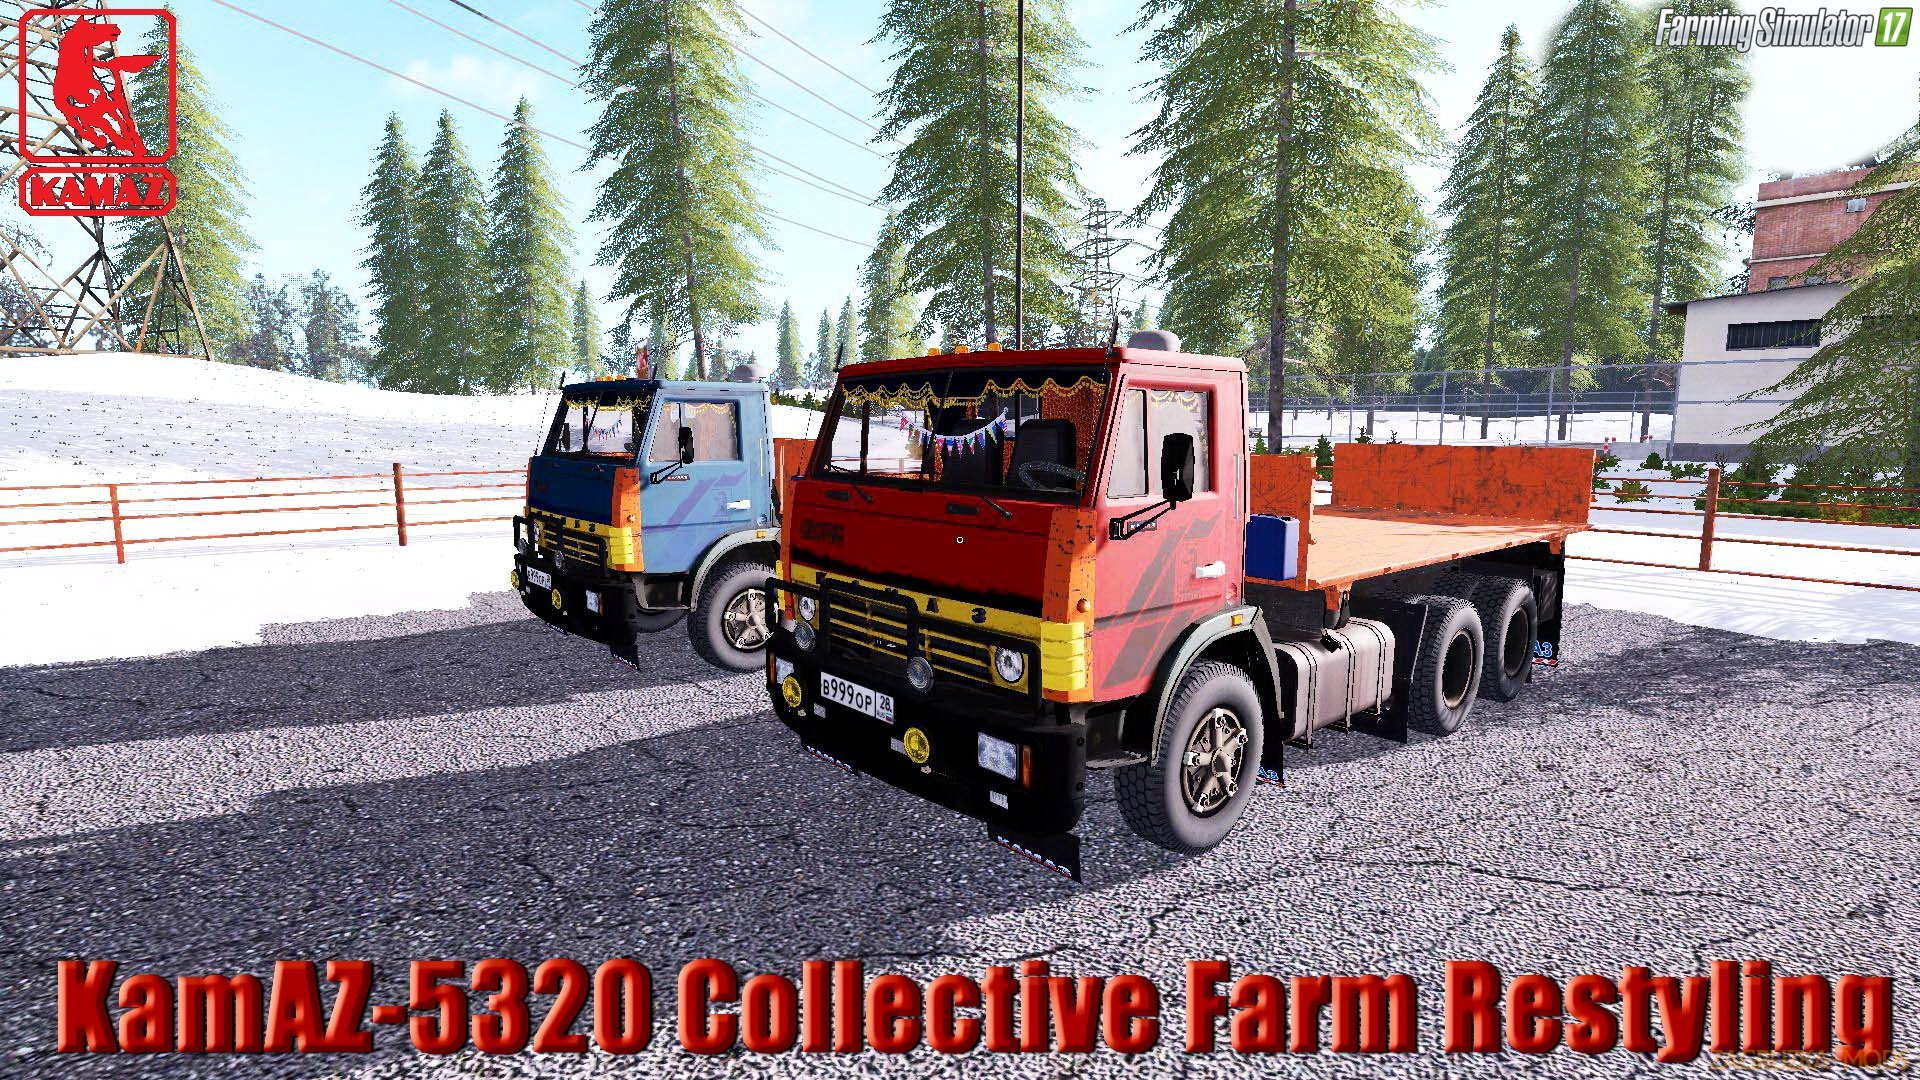 KamAZ-5320 Collective Farm Restyling v1.2.1 for FS 17